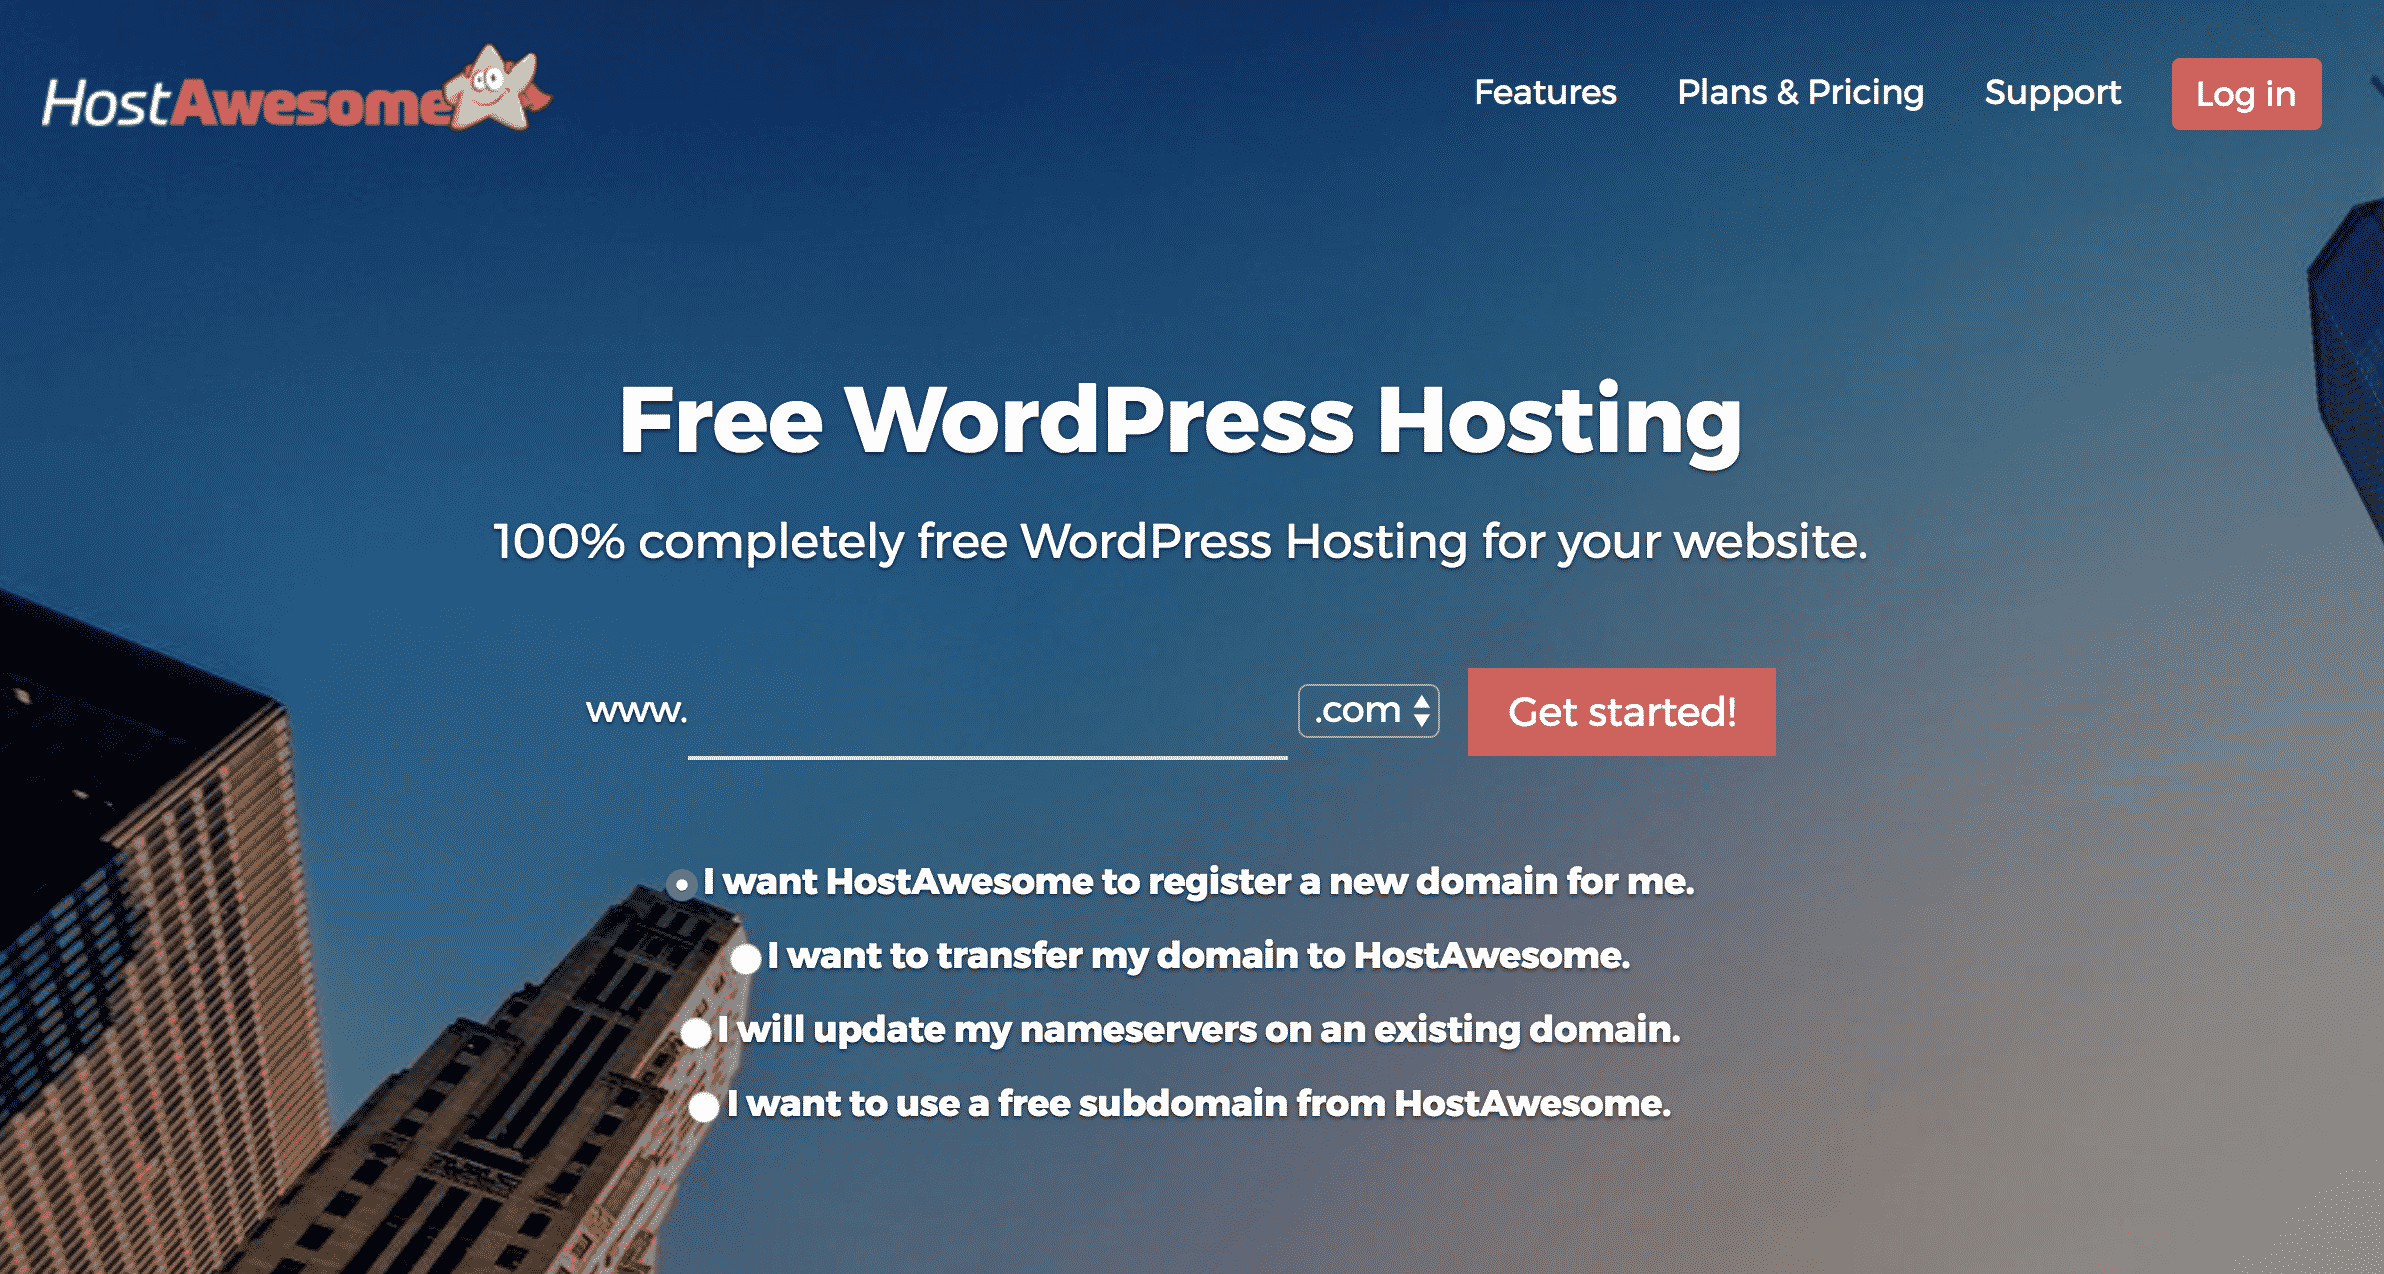 Host Awesome Free WordPress Hosting